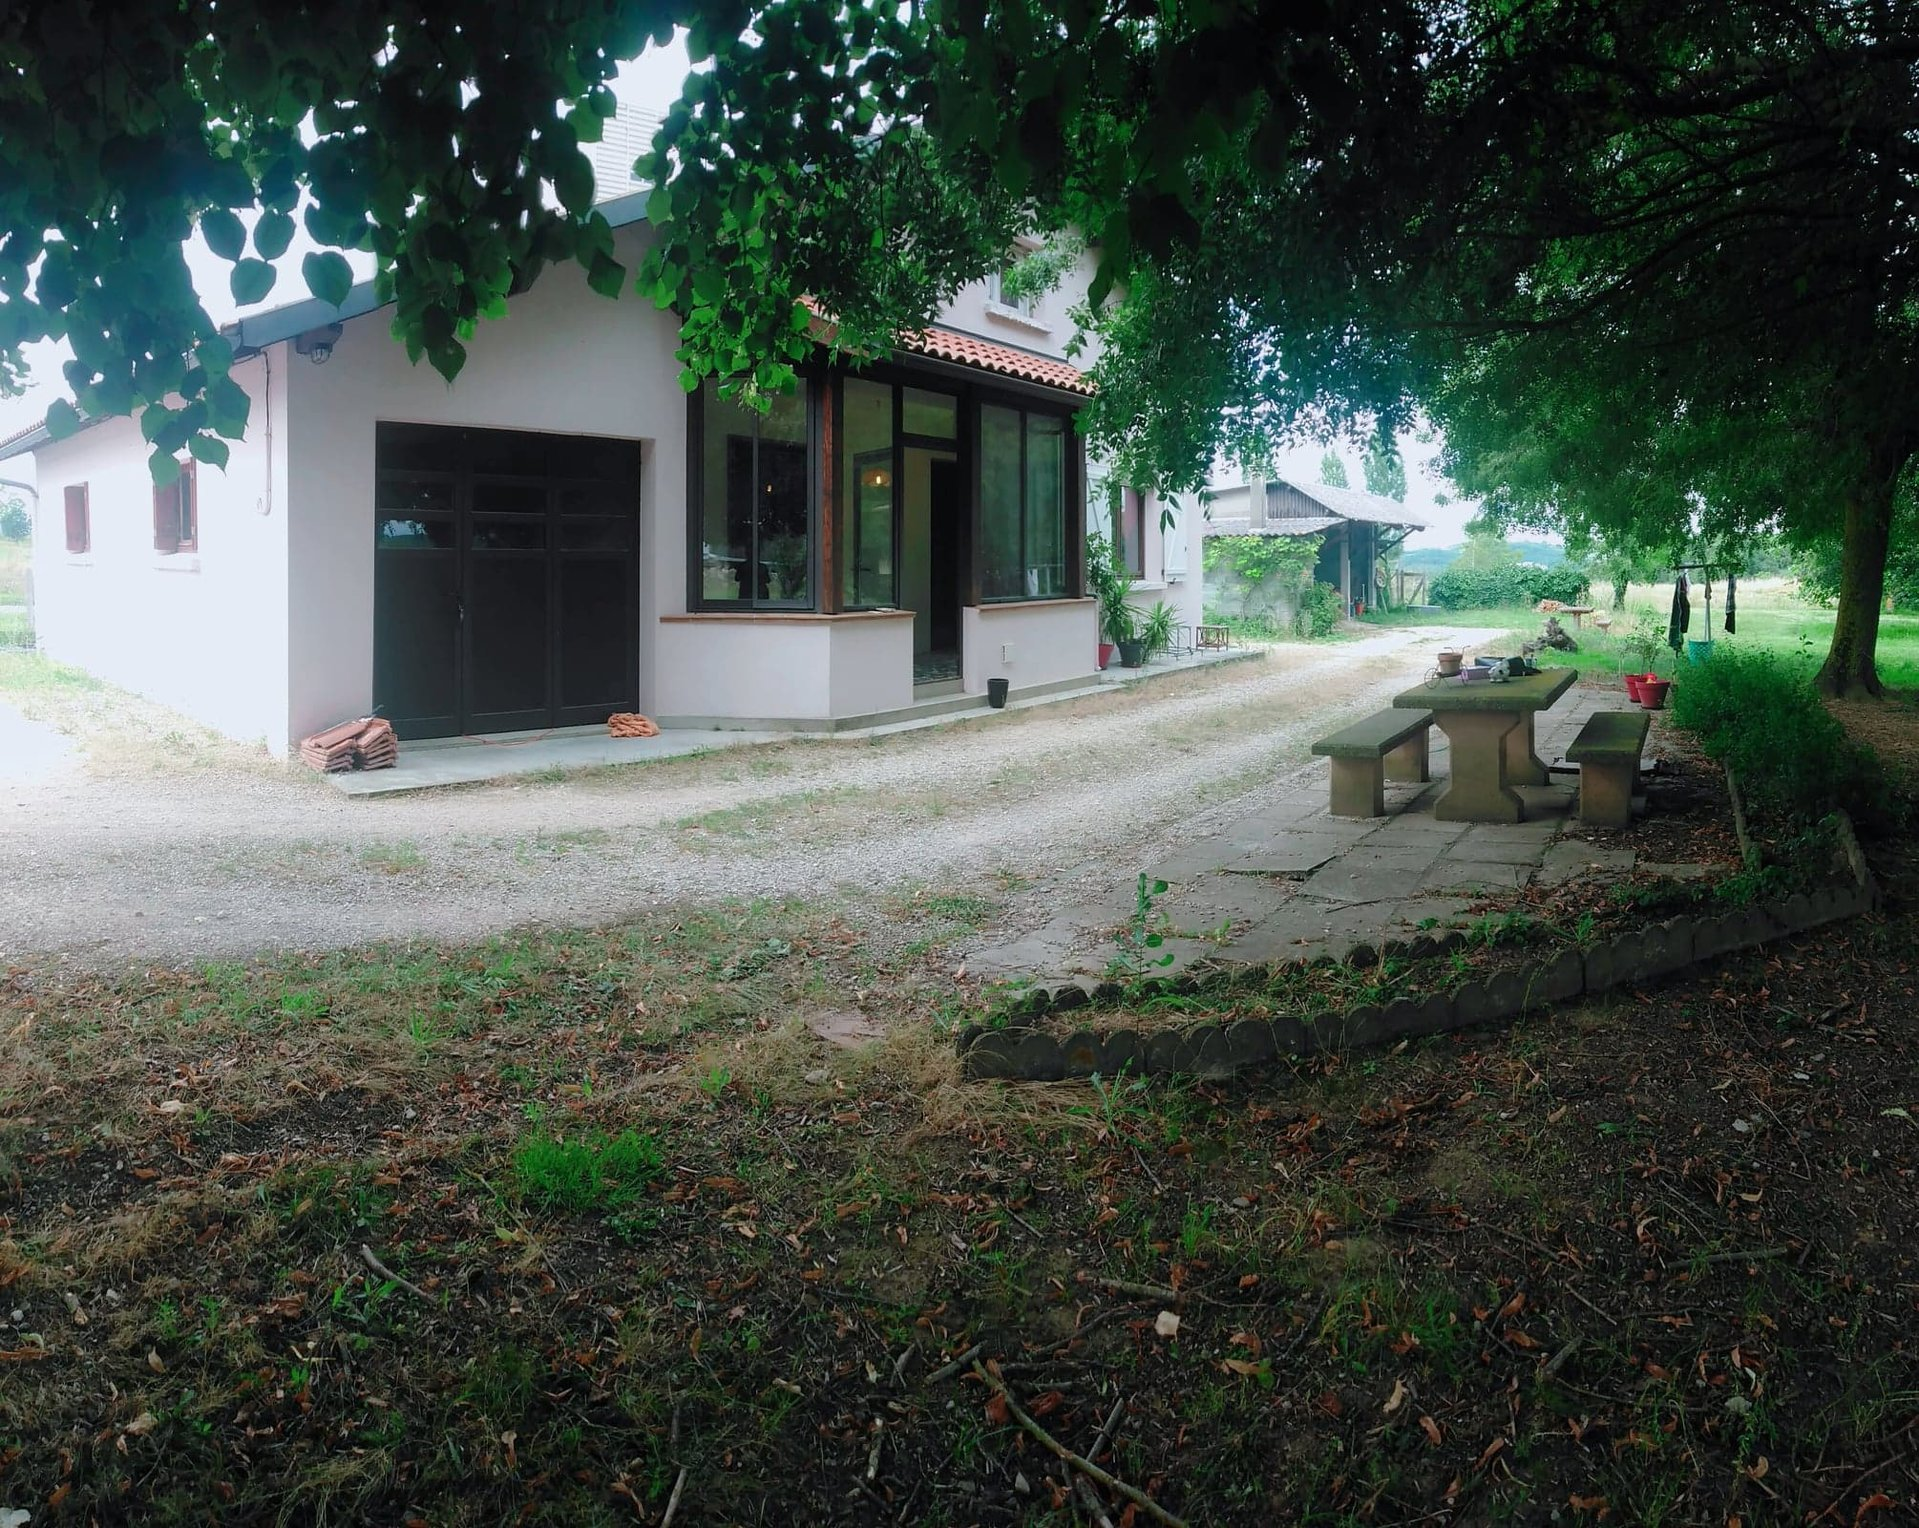 71 sqm house with 50m2 attic - 5,500 sqm of land outbuildings